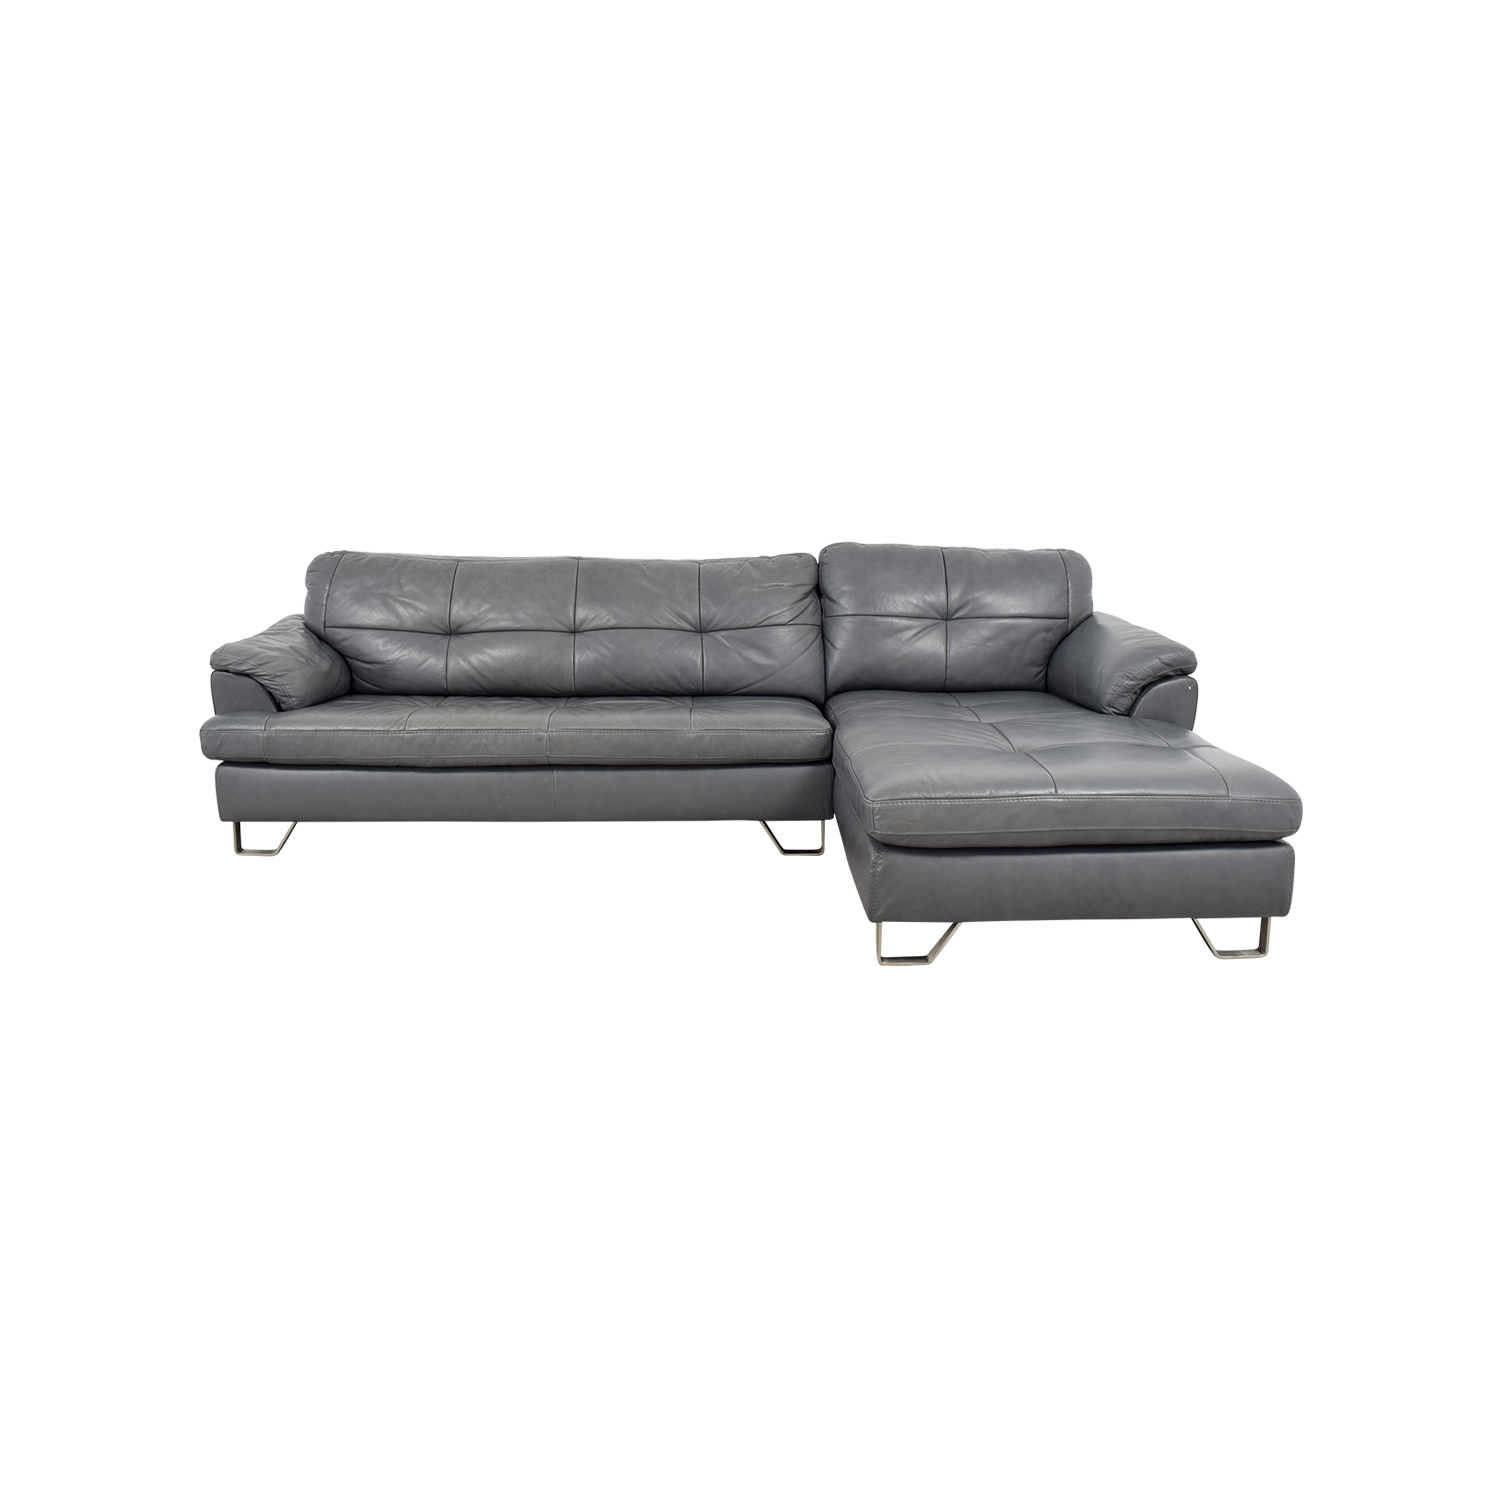 Ashley Furniture Ashley Furniture Gray Tufted Sectional Sofa Grey ...  sc 1 st  Furnishare : ashley furniture grey sectional - Sectionals, Sofas & Couches